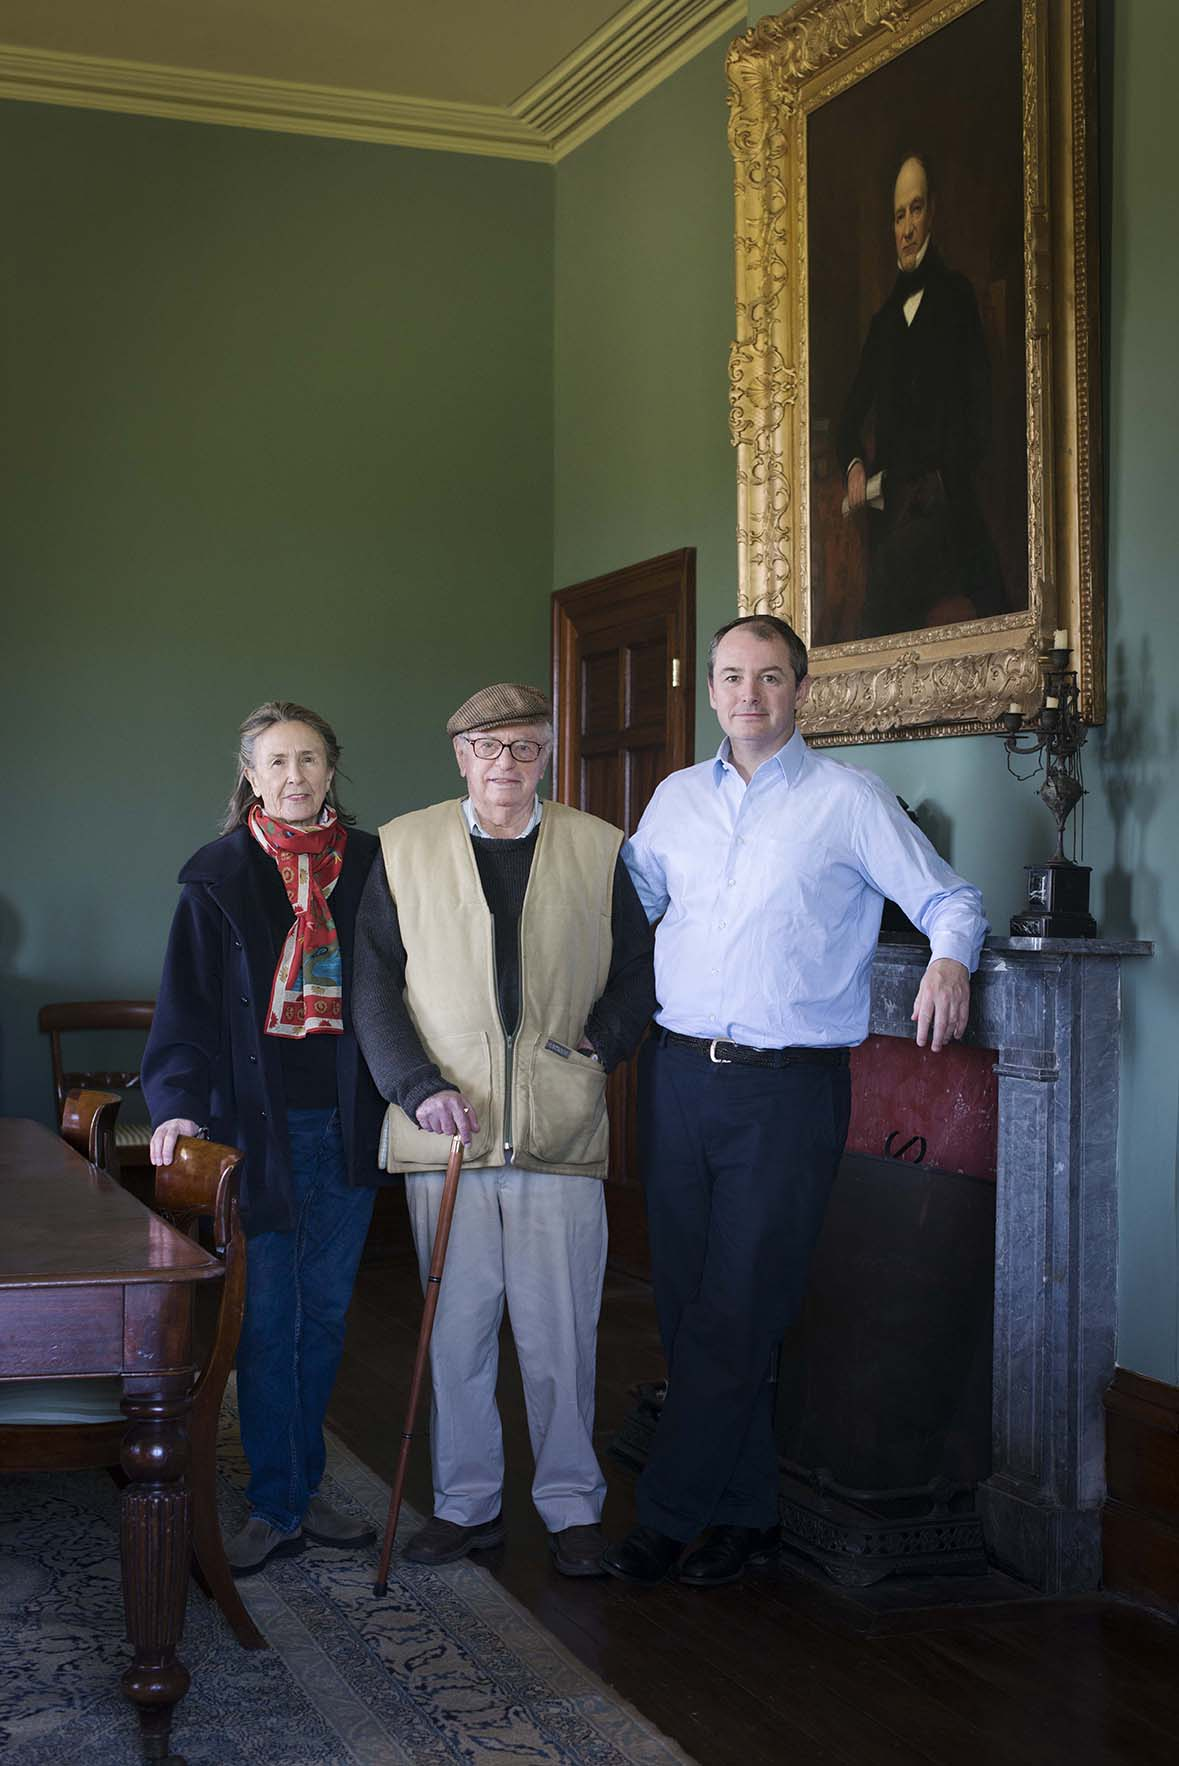 Older couple with younger man in front of ornately framed painting over a fireplace in green-painted room.